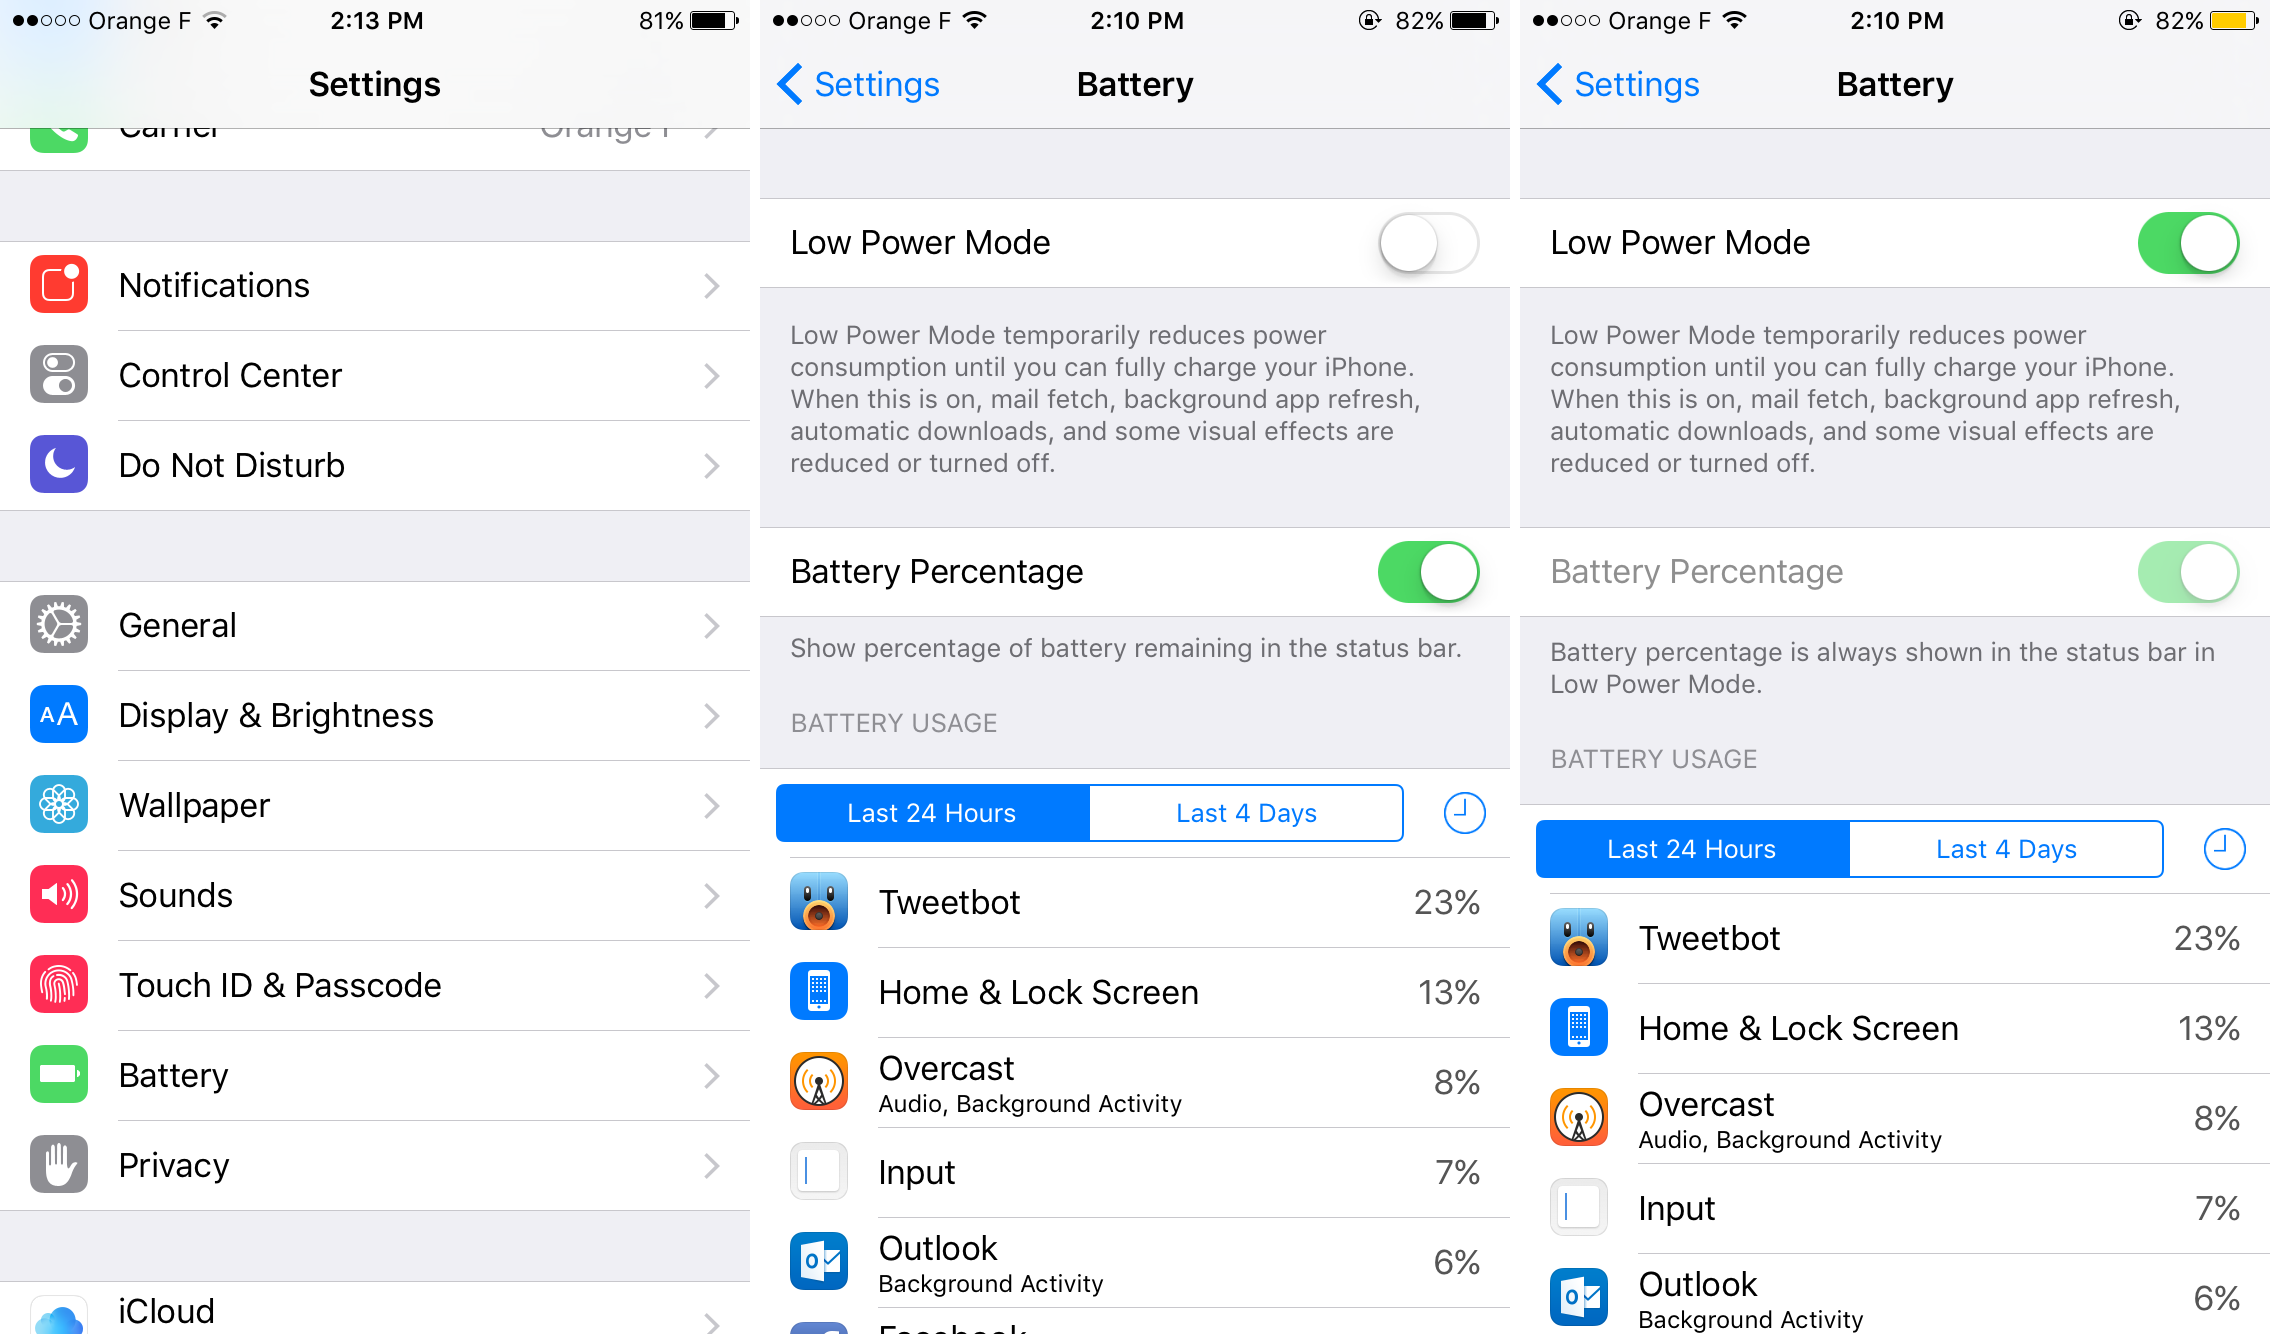 iOS 9 - Low Power Mode